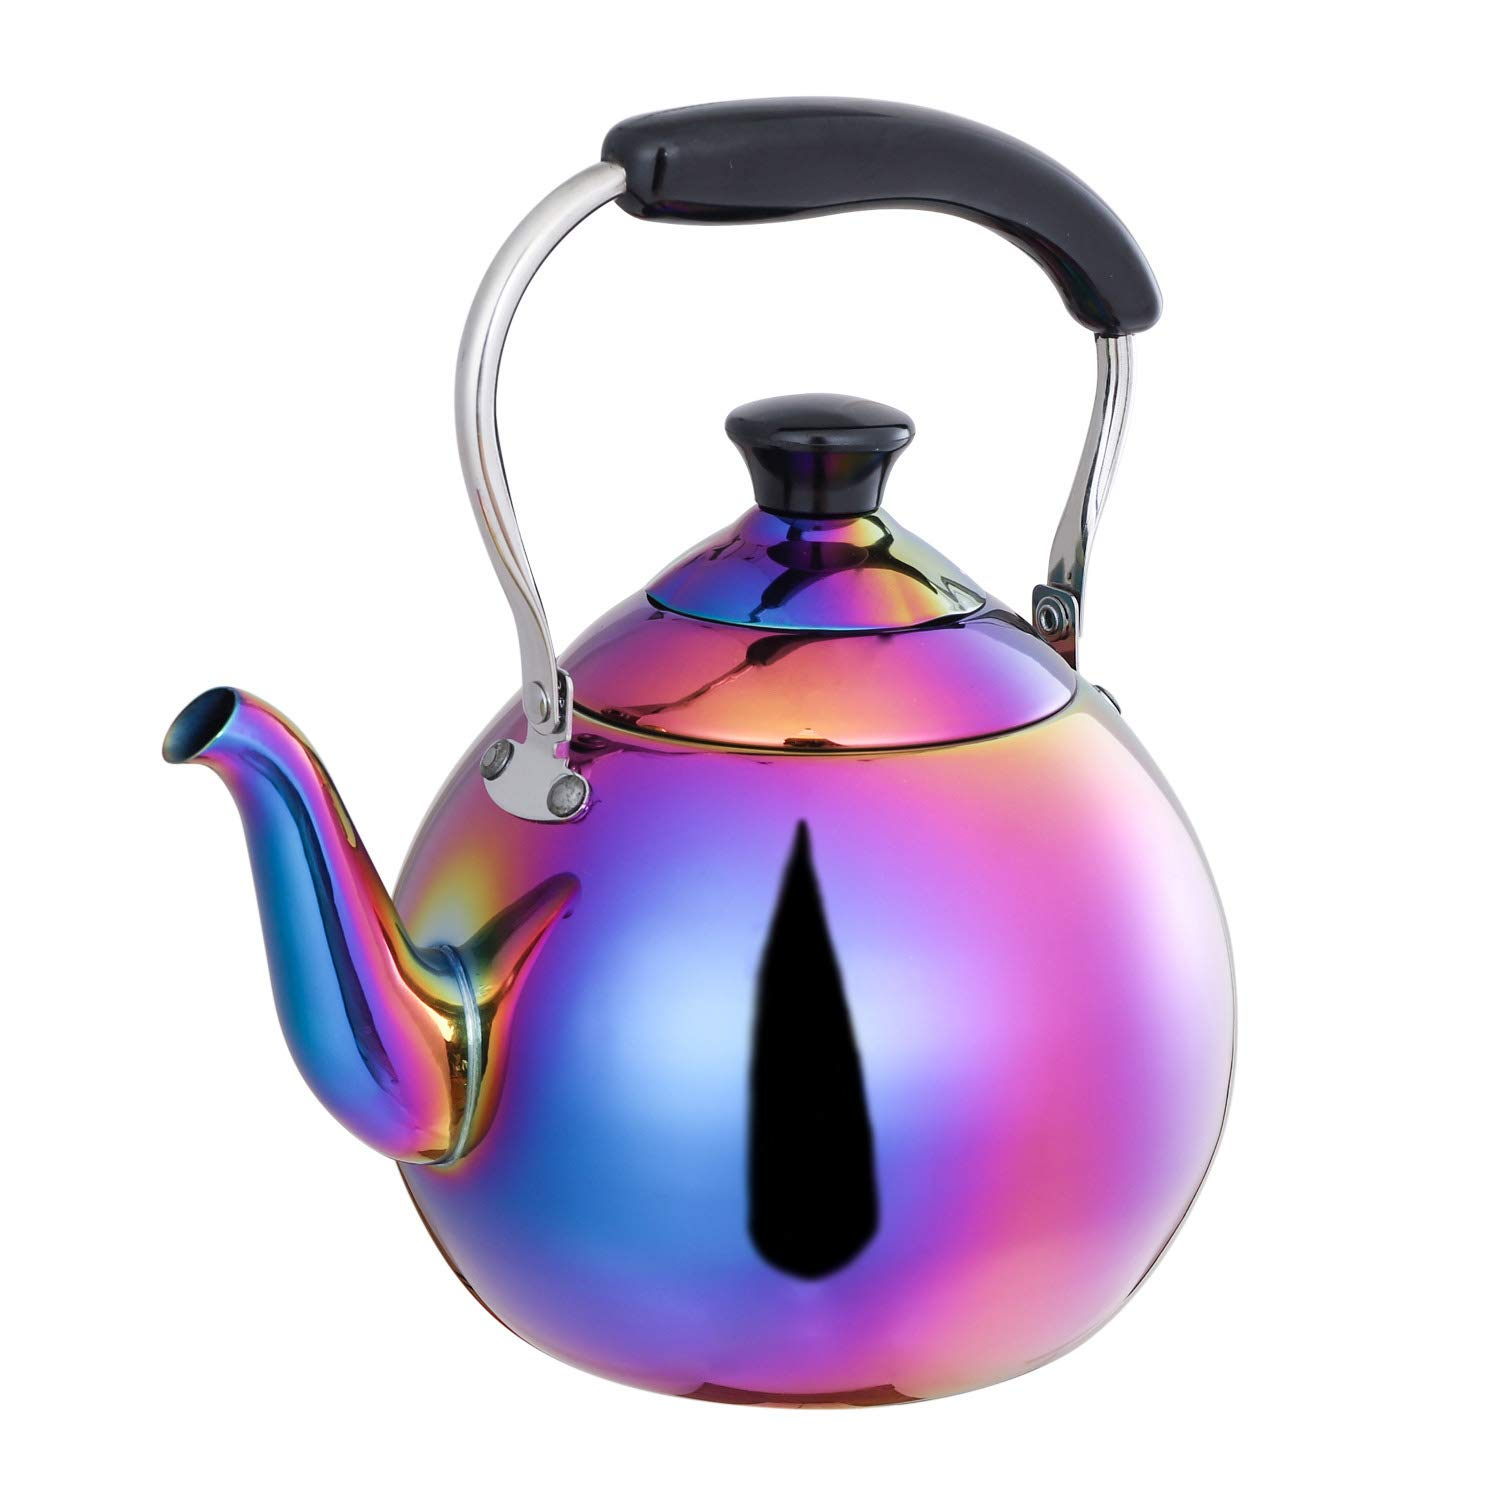 ROYDOM Whistling Tea Kettle Stainless Steel Teapot, 2-Liter Rainbow Teakettle for Stovetop Induction Stove Top, Fast Boiling Heat Water Tea Pot Maker Colorful 2.1-Quart by ROYDOM